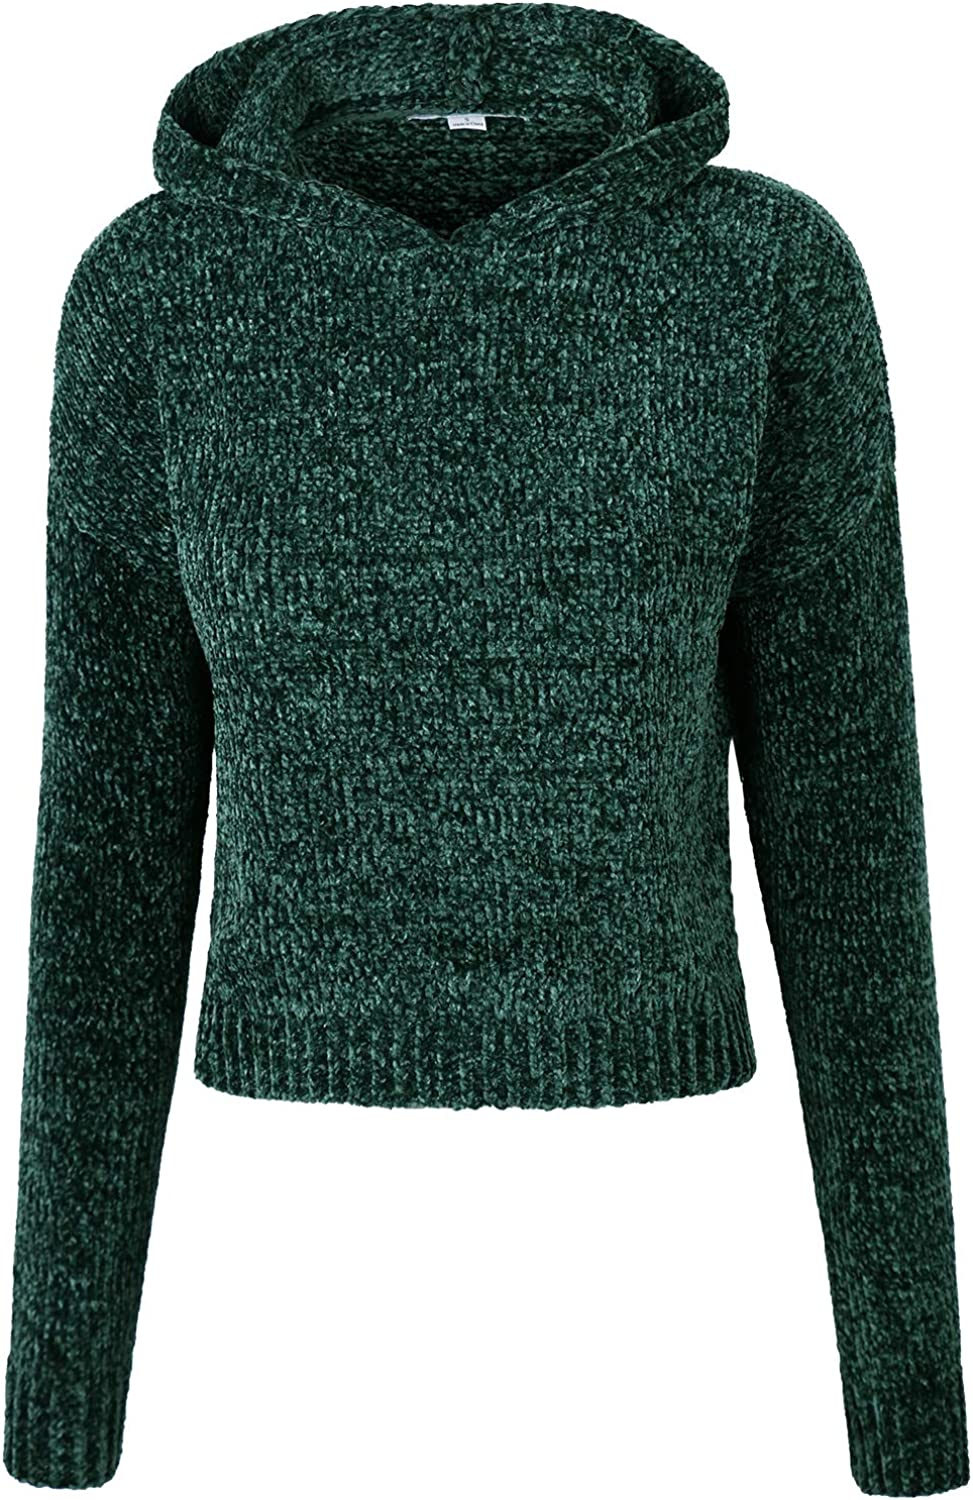 Makeitmint Women's Super Soft Ribbed Chenille Hoodie Knit Sweater Top [3 colors]